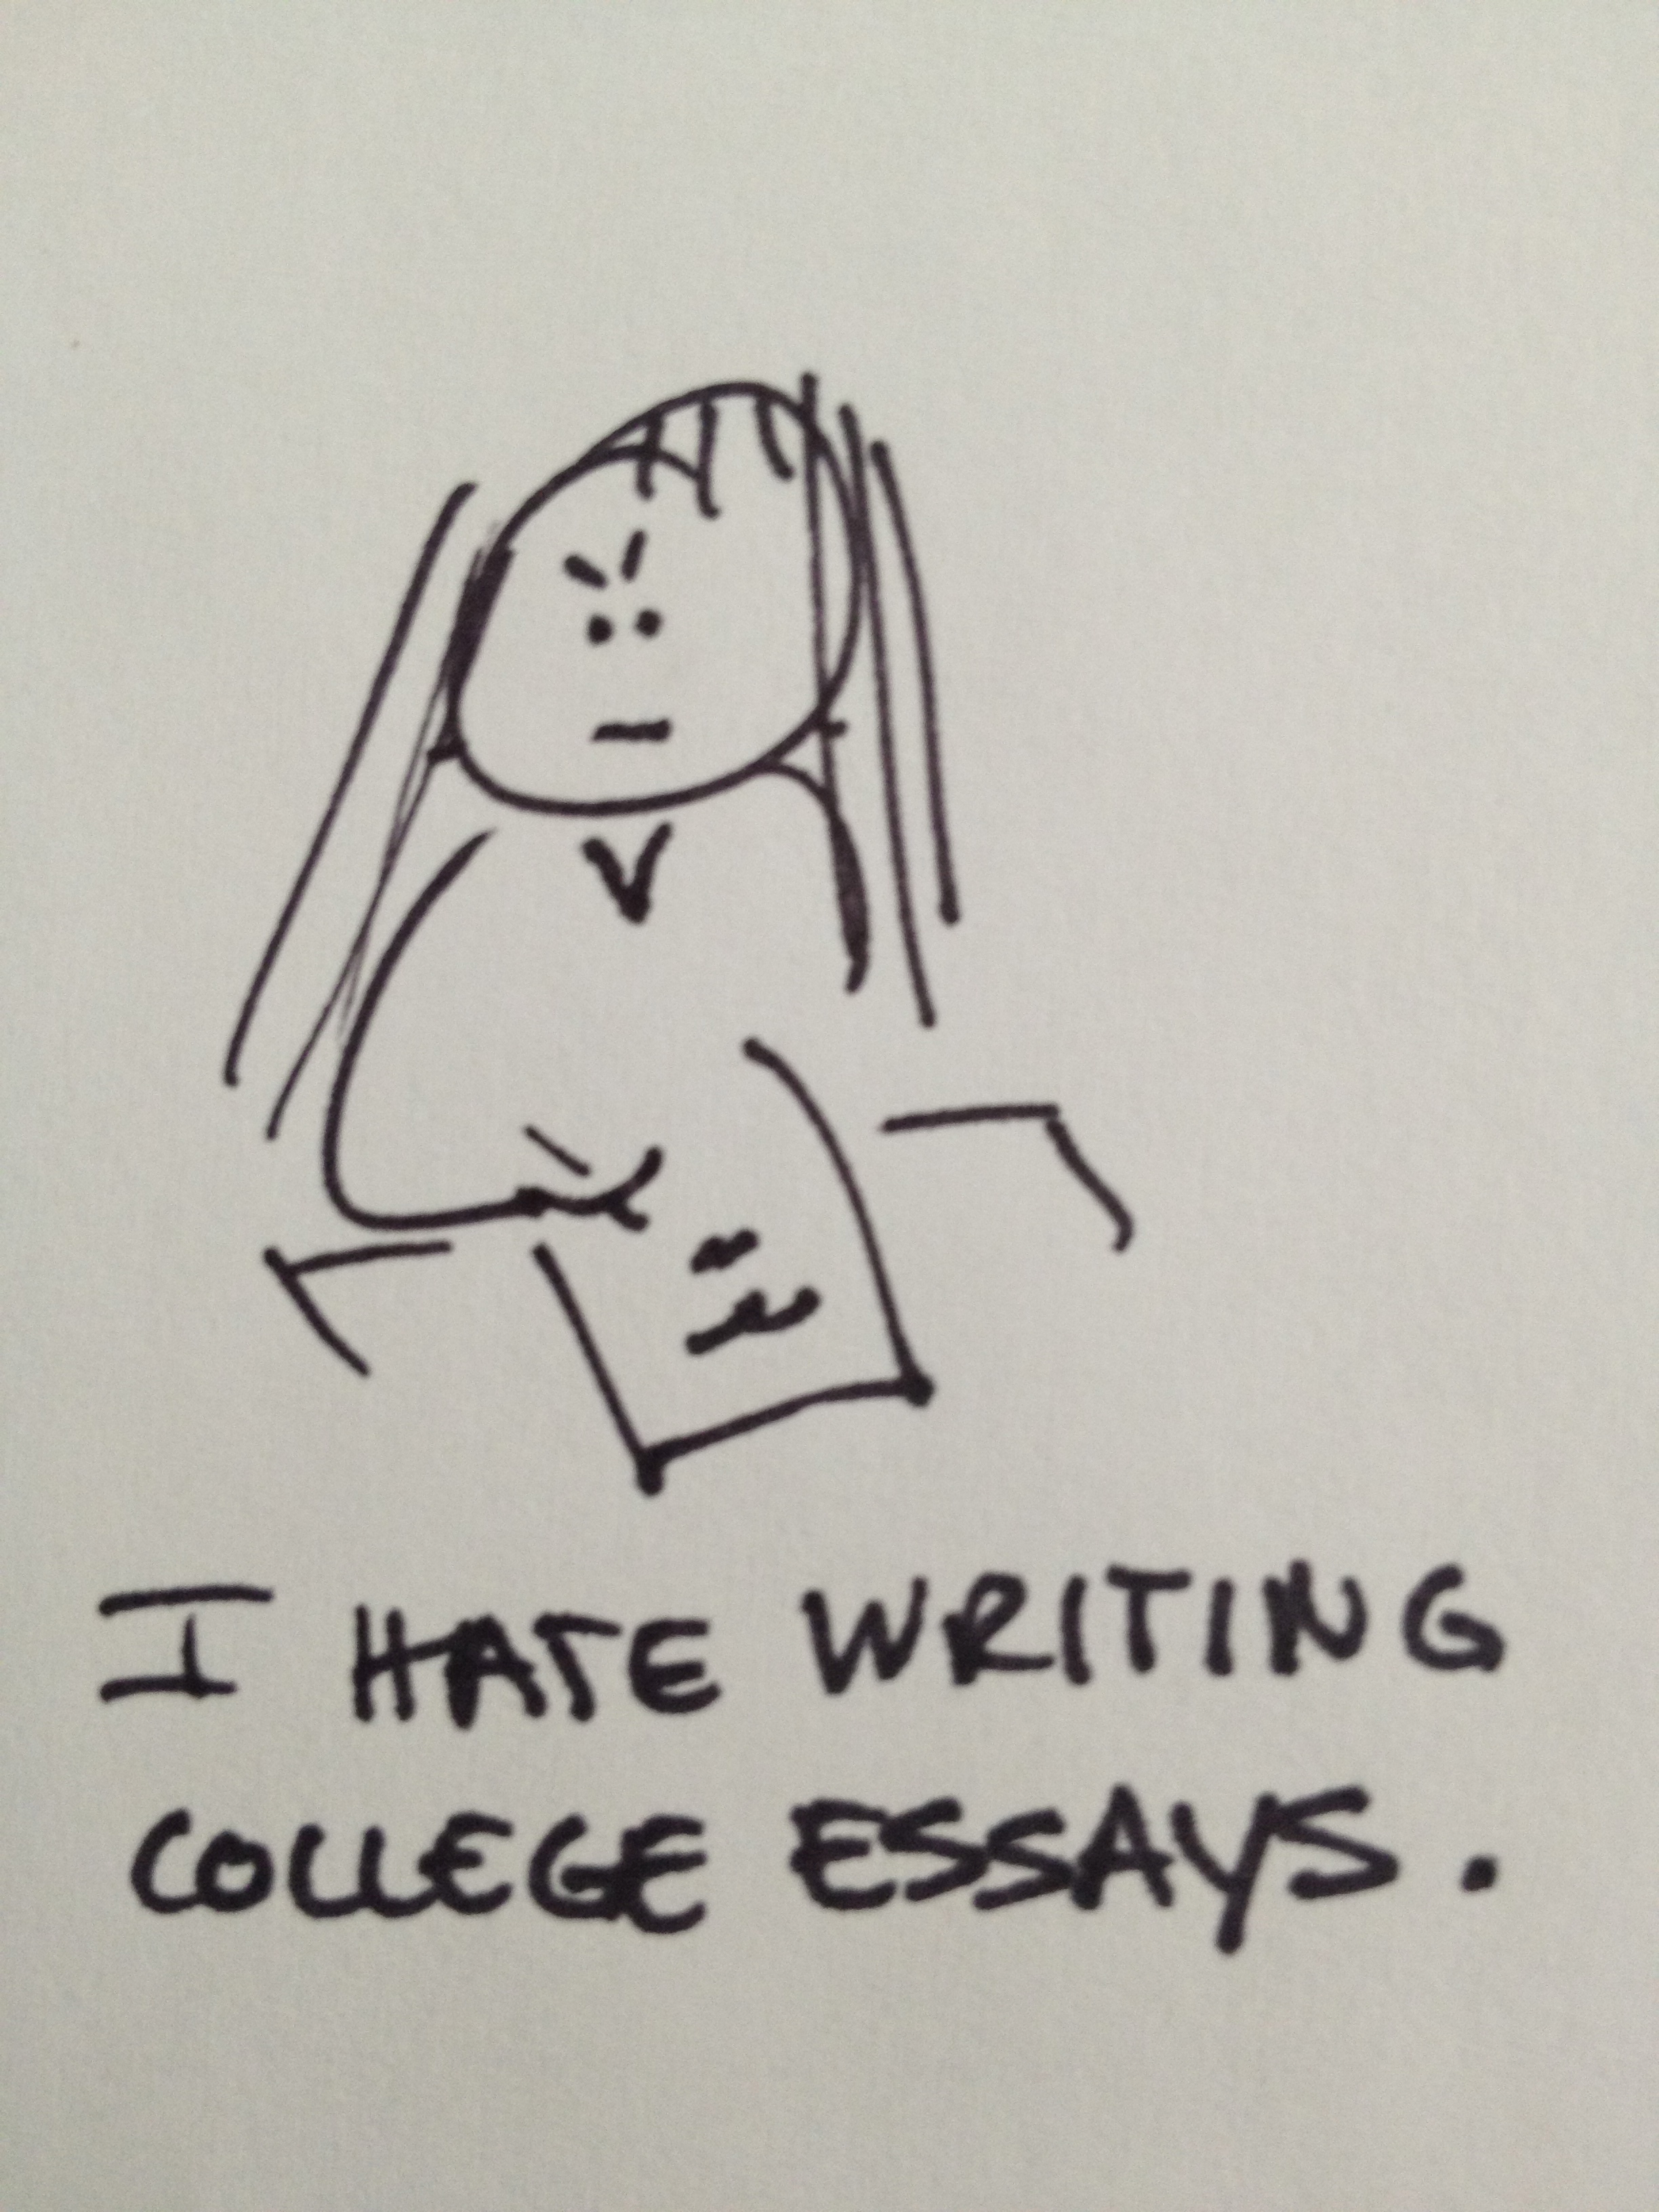 Tips for Writing the College Application Essay - US News